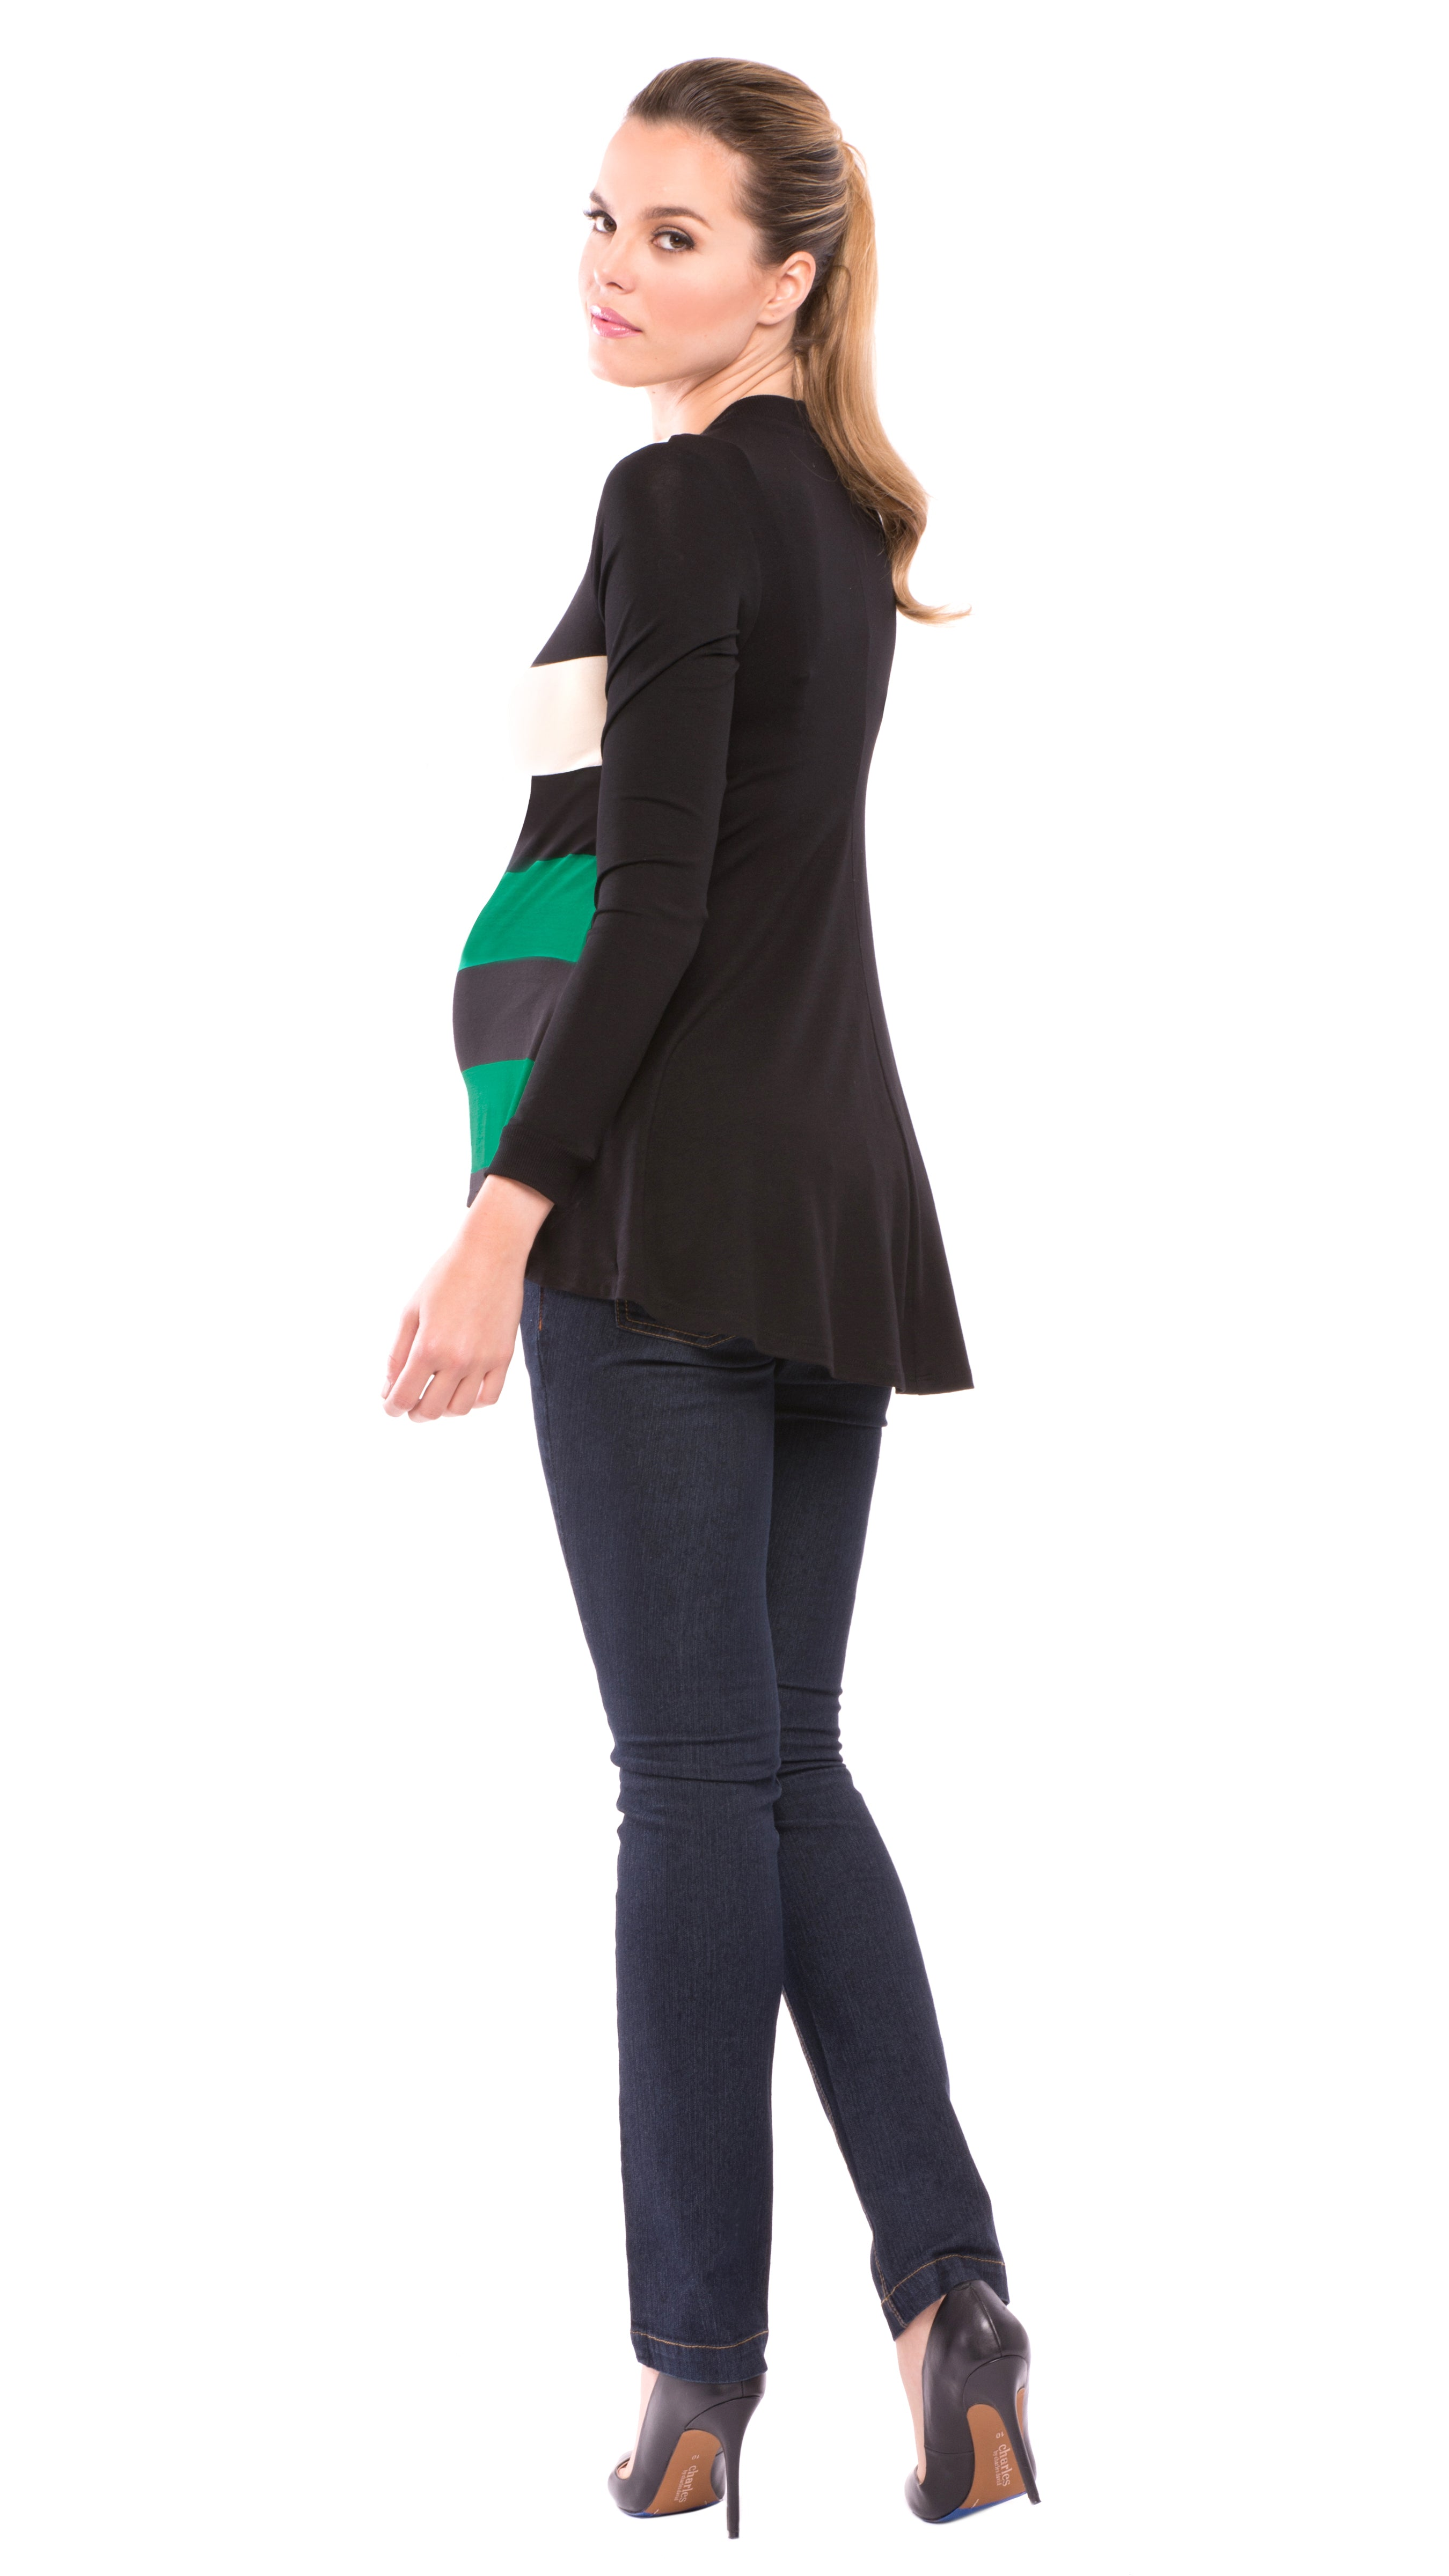 Z Liliana Pullover Top